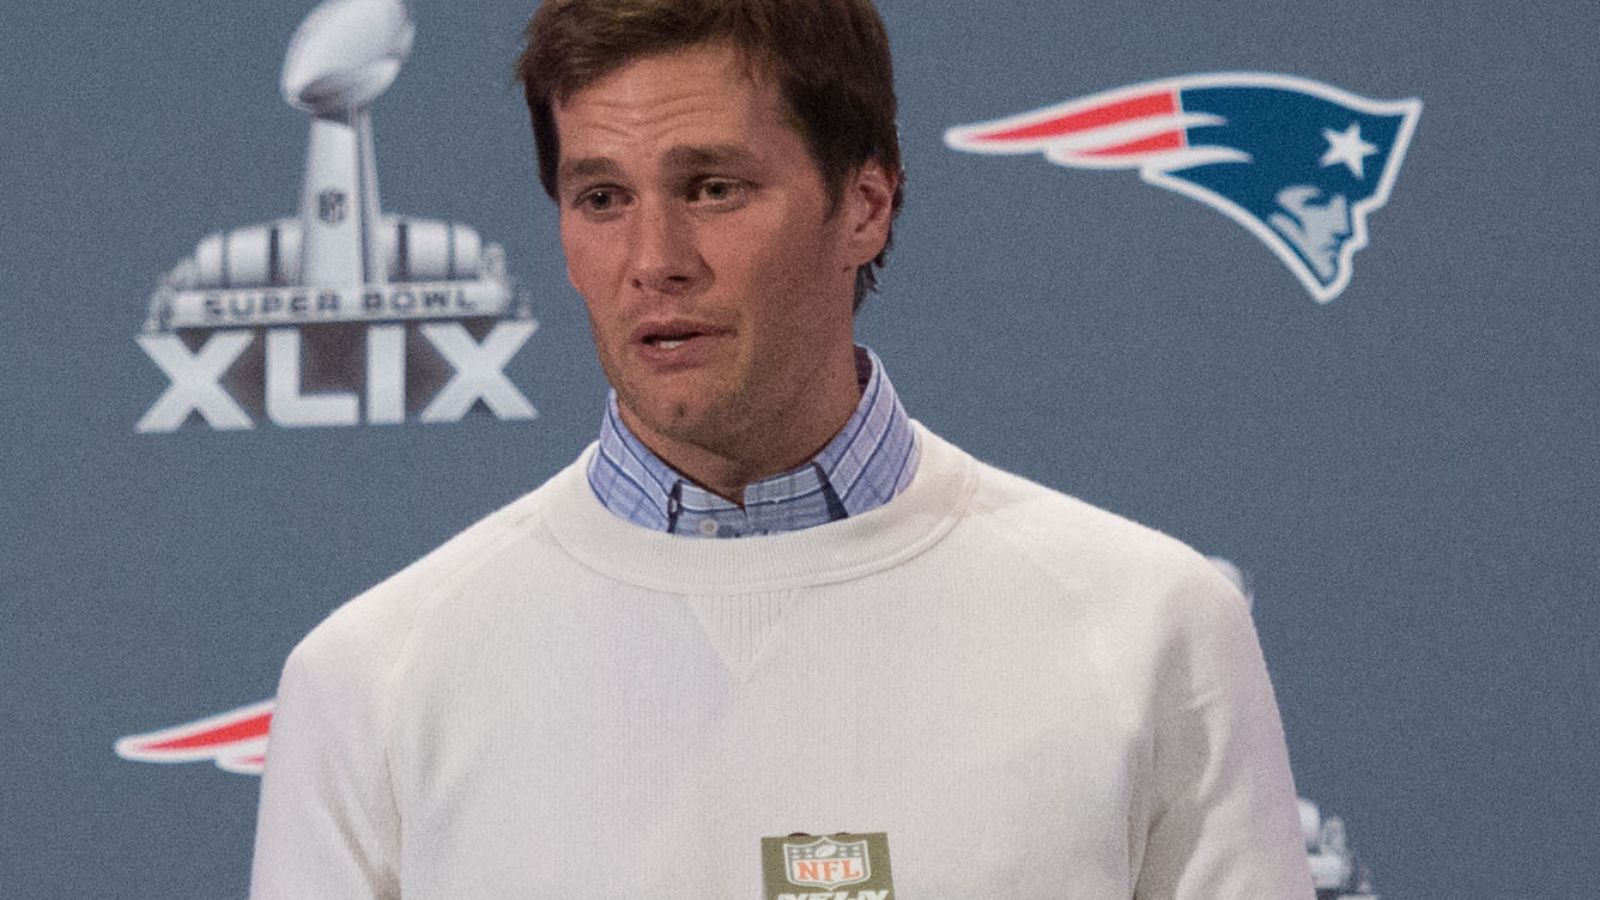 That secret video? Yeah, it's nothing at all. And the Patriots sent it in.